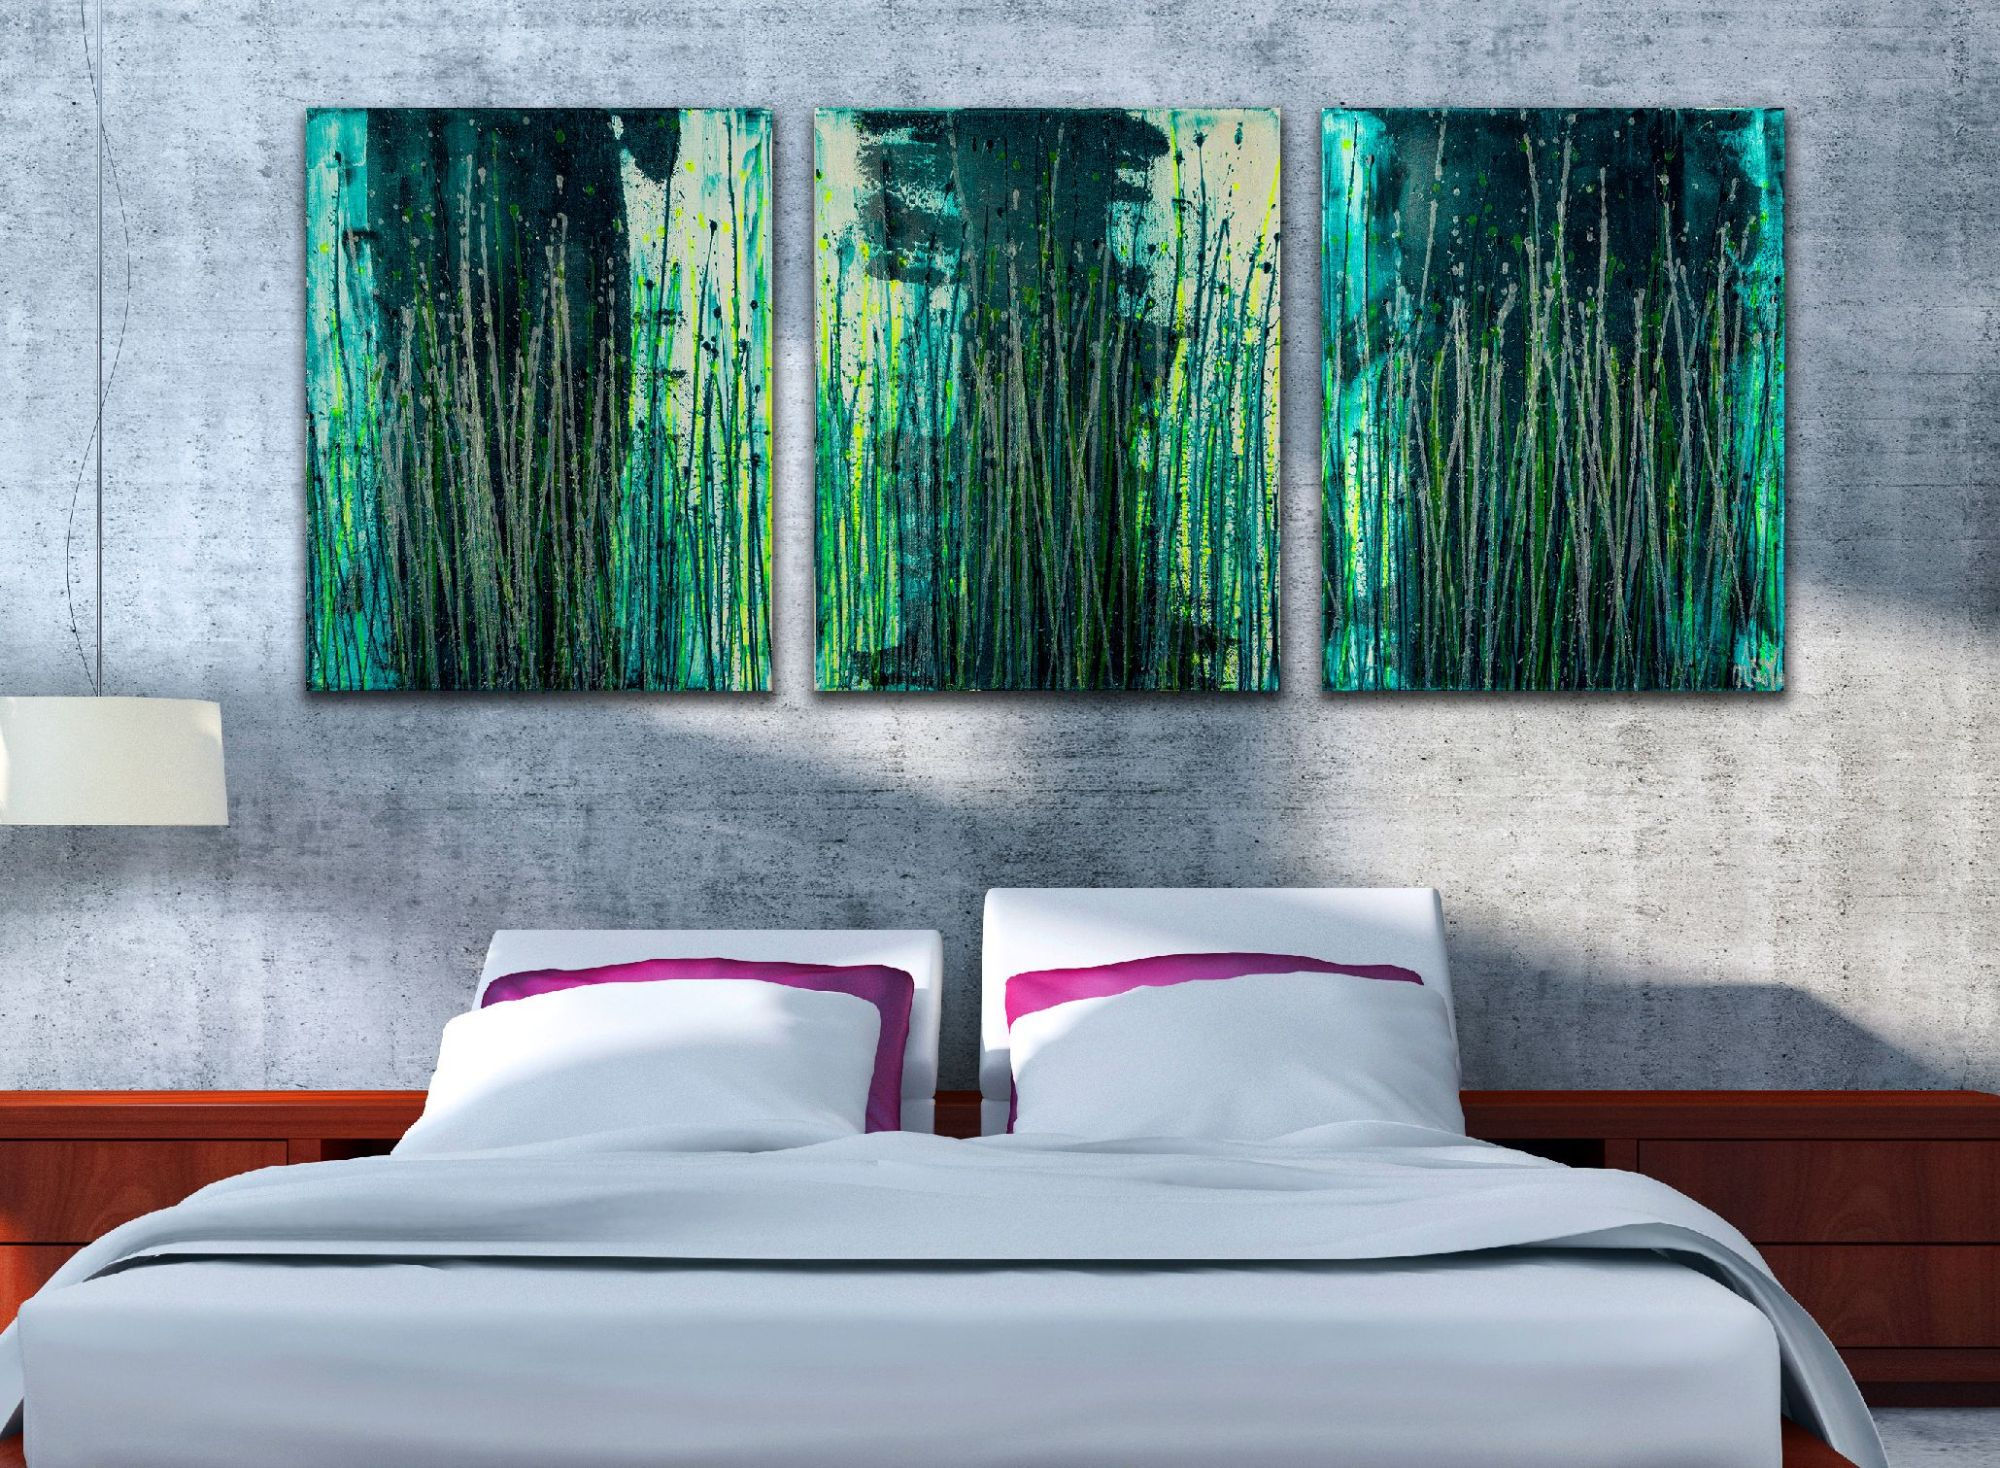 Room example - Vernal Garden (With Green and Silver) (2021) - Triptych